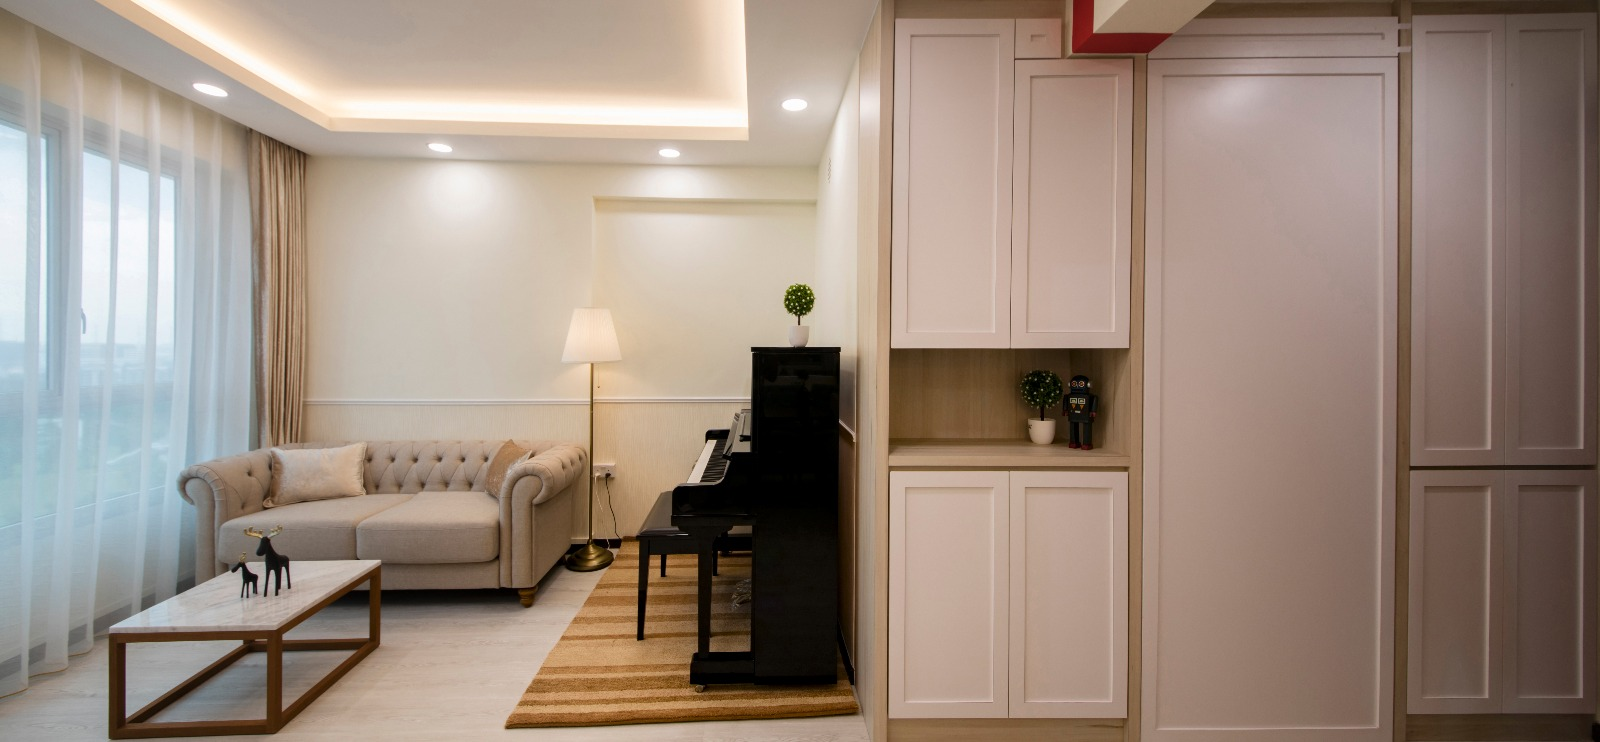 Residential Interior Design – Starry Homestead Singapore